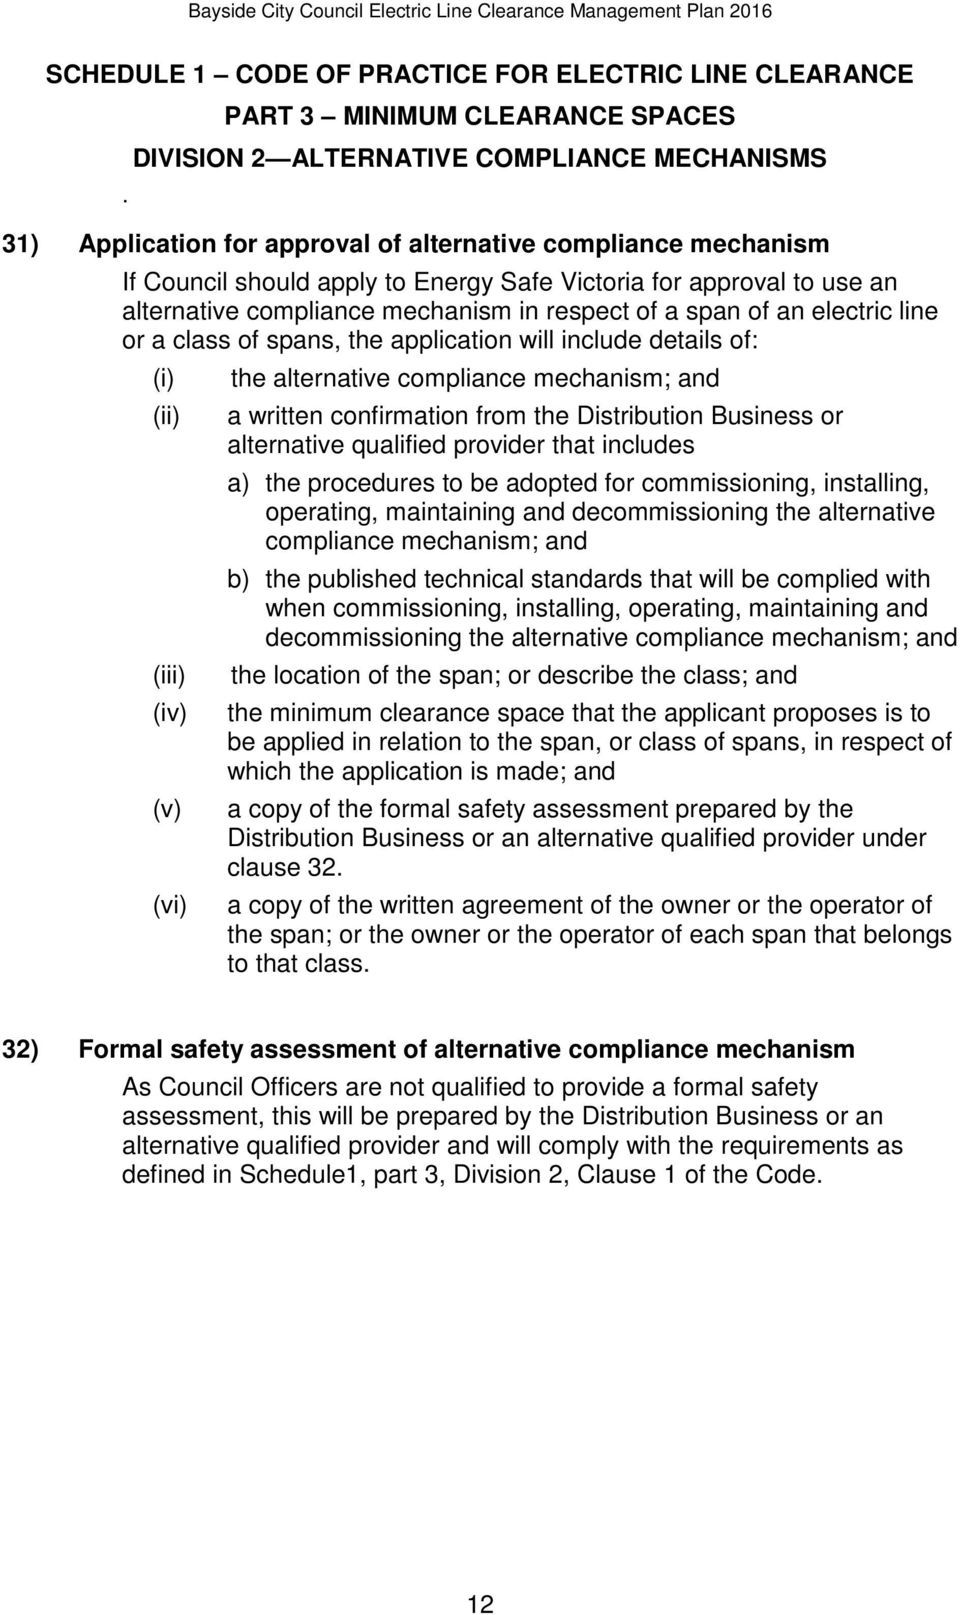 approval to use an alternative compliance mechanism in respect of a span of an electric line or a class of spans, the application will include details of: (i) the alternative compliance mechanism;